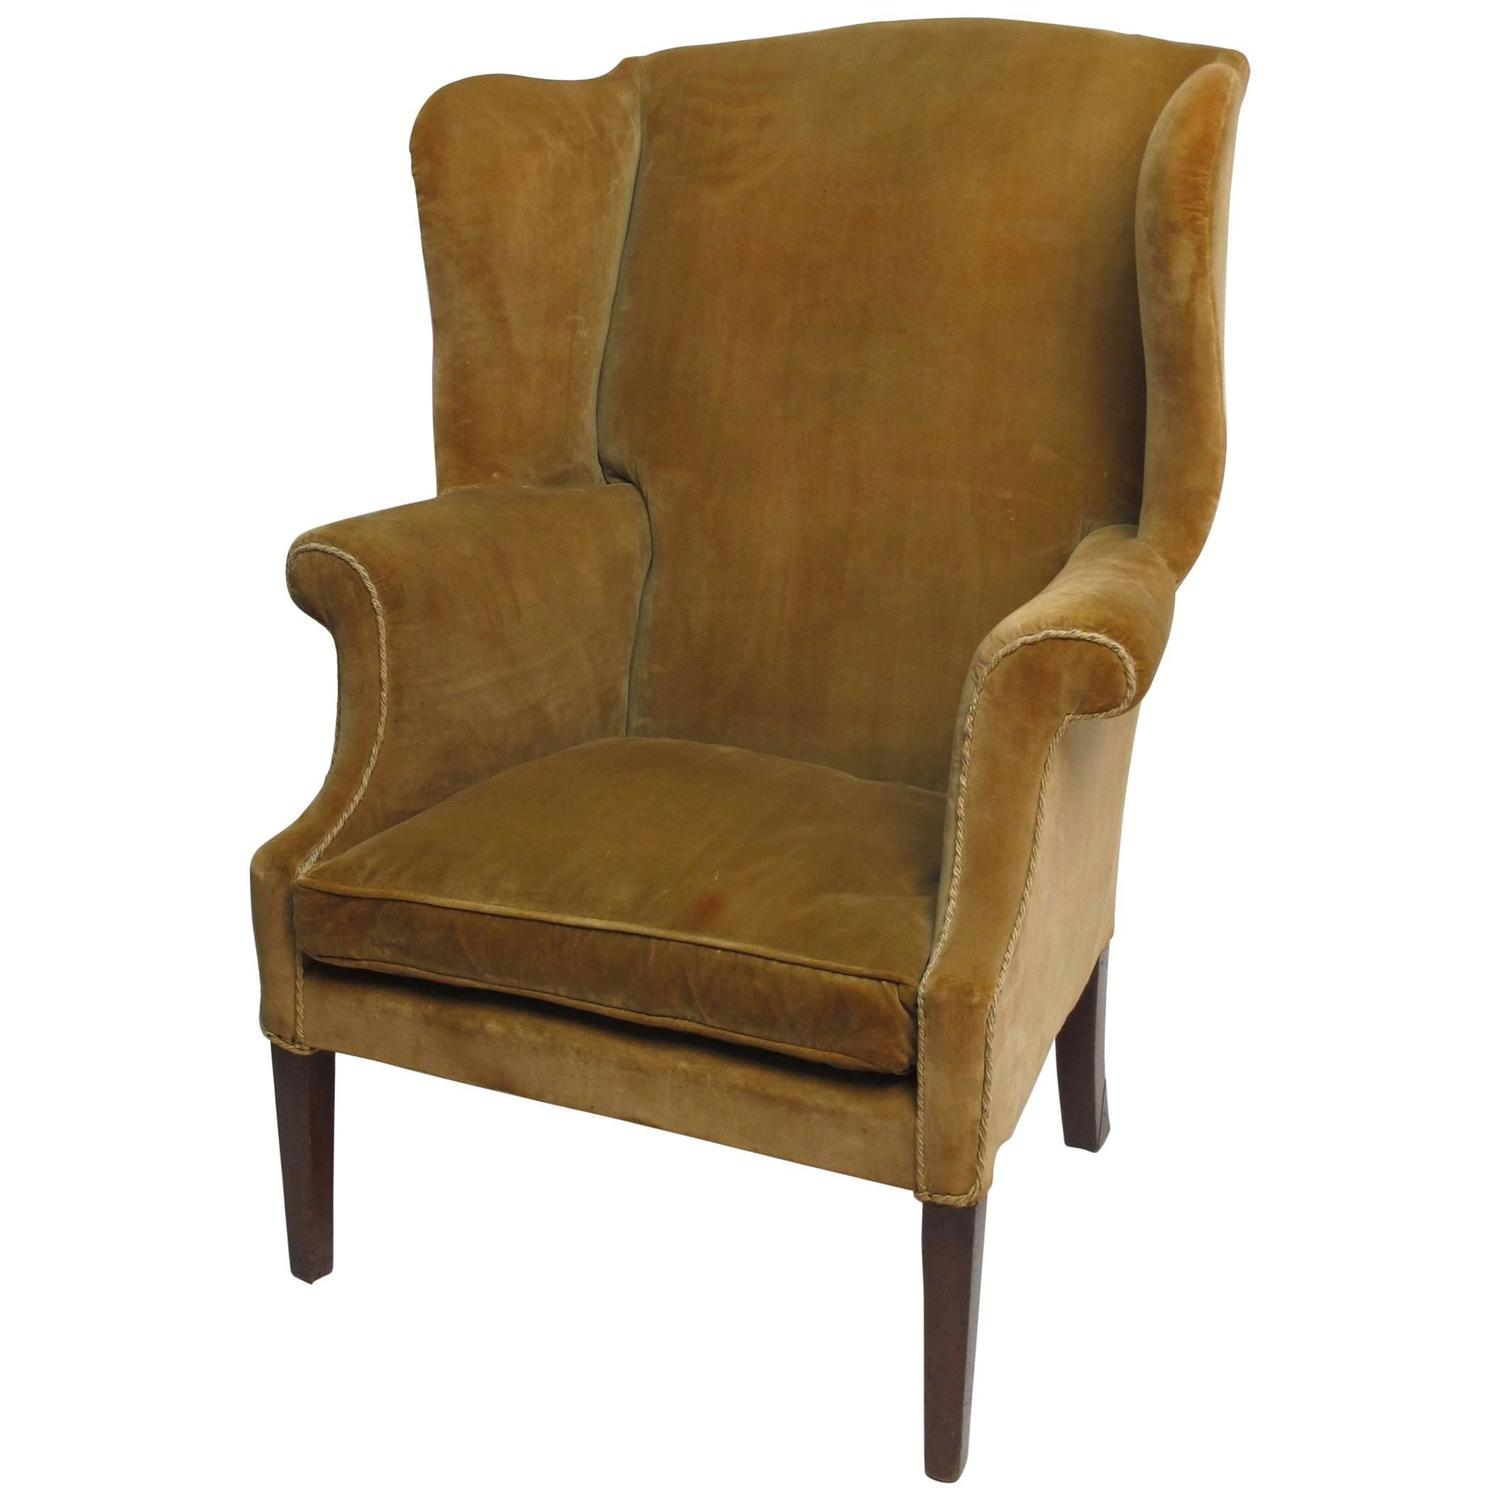 18th Century American Wingback Chair For Sale at 1stdibs